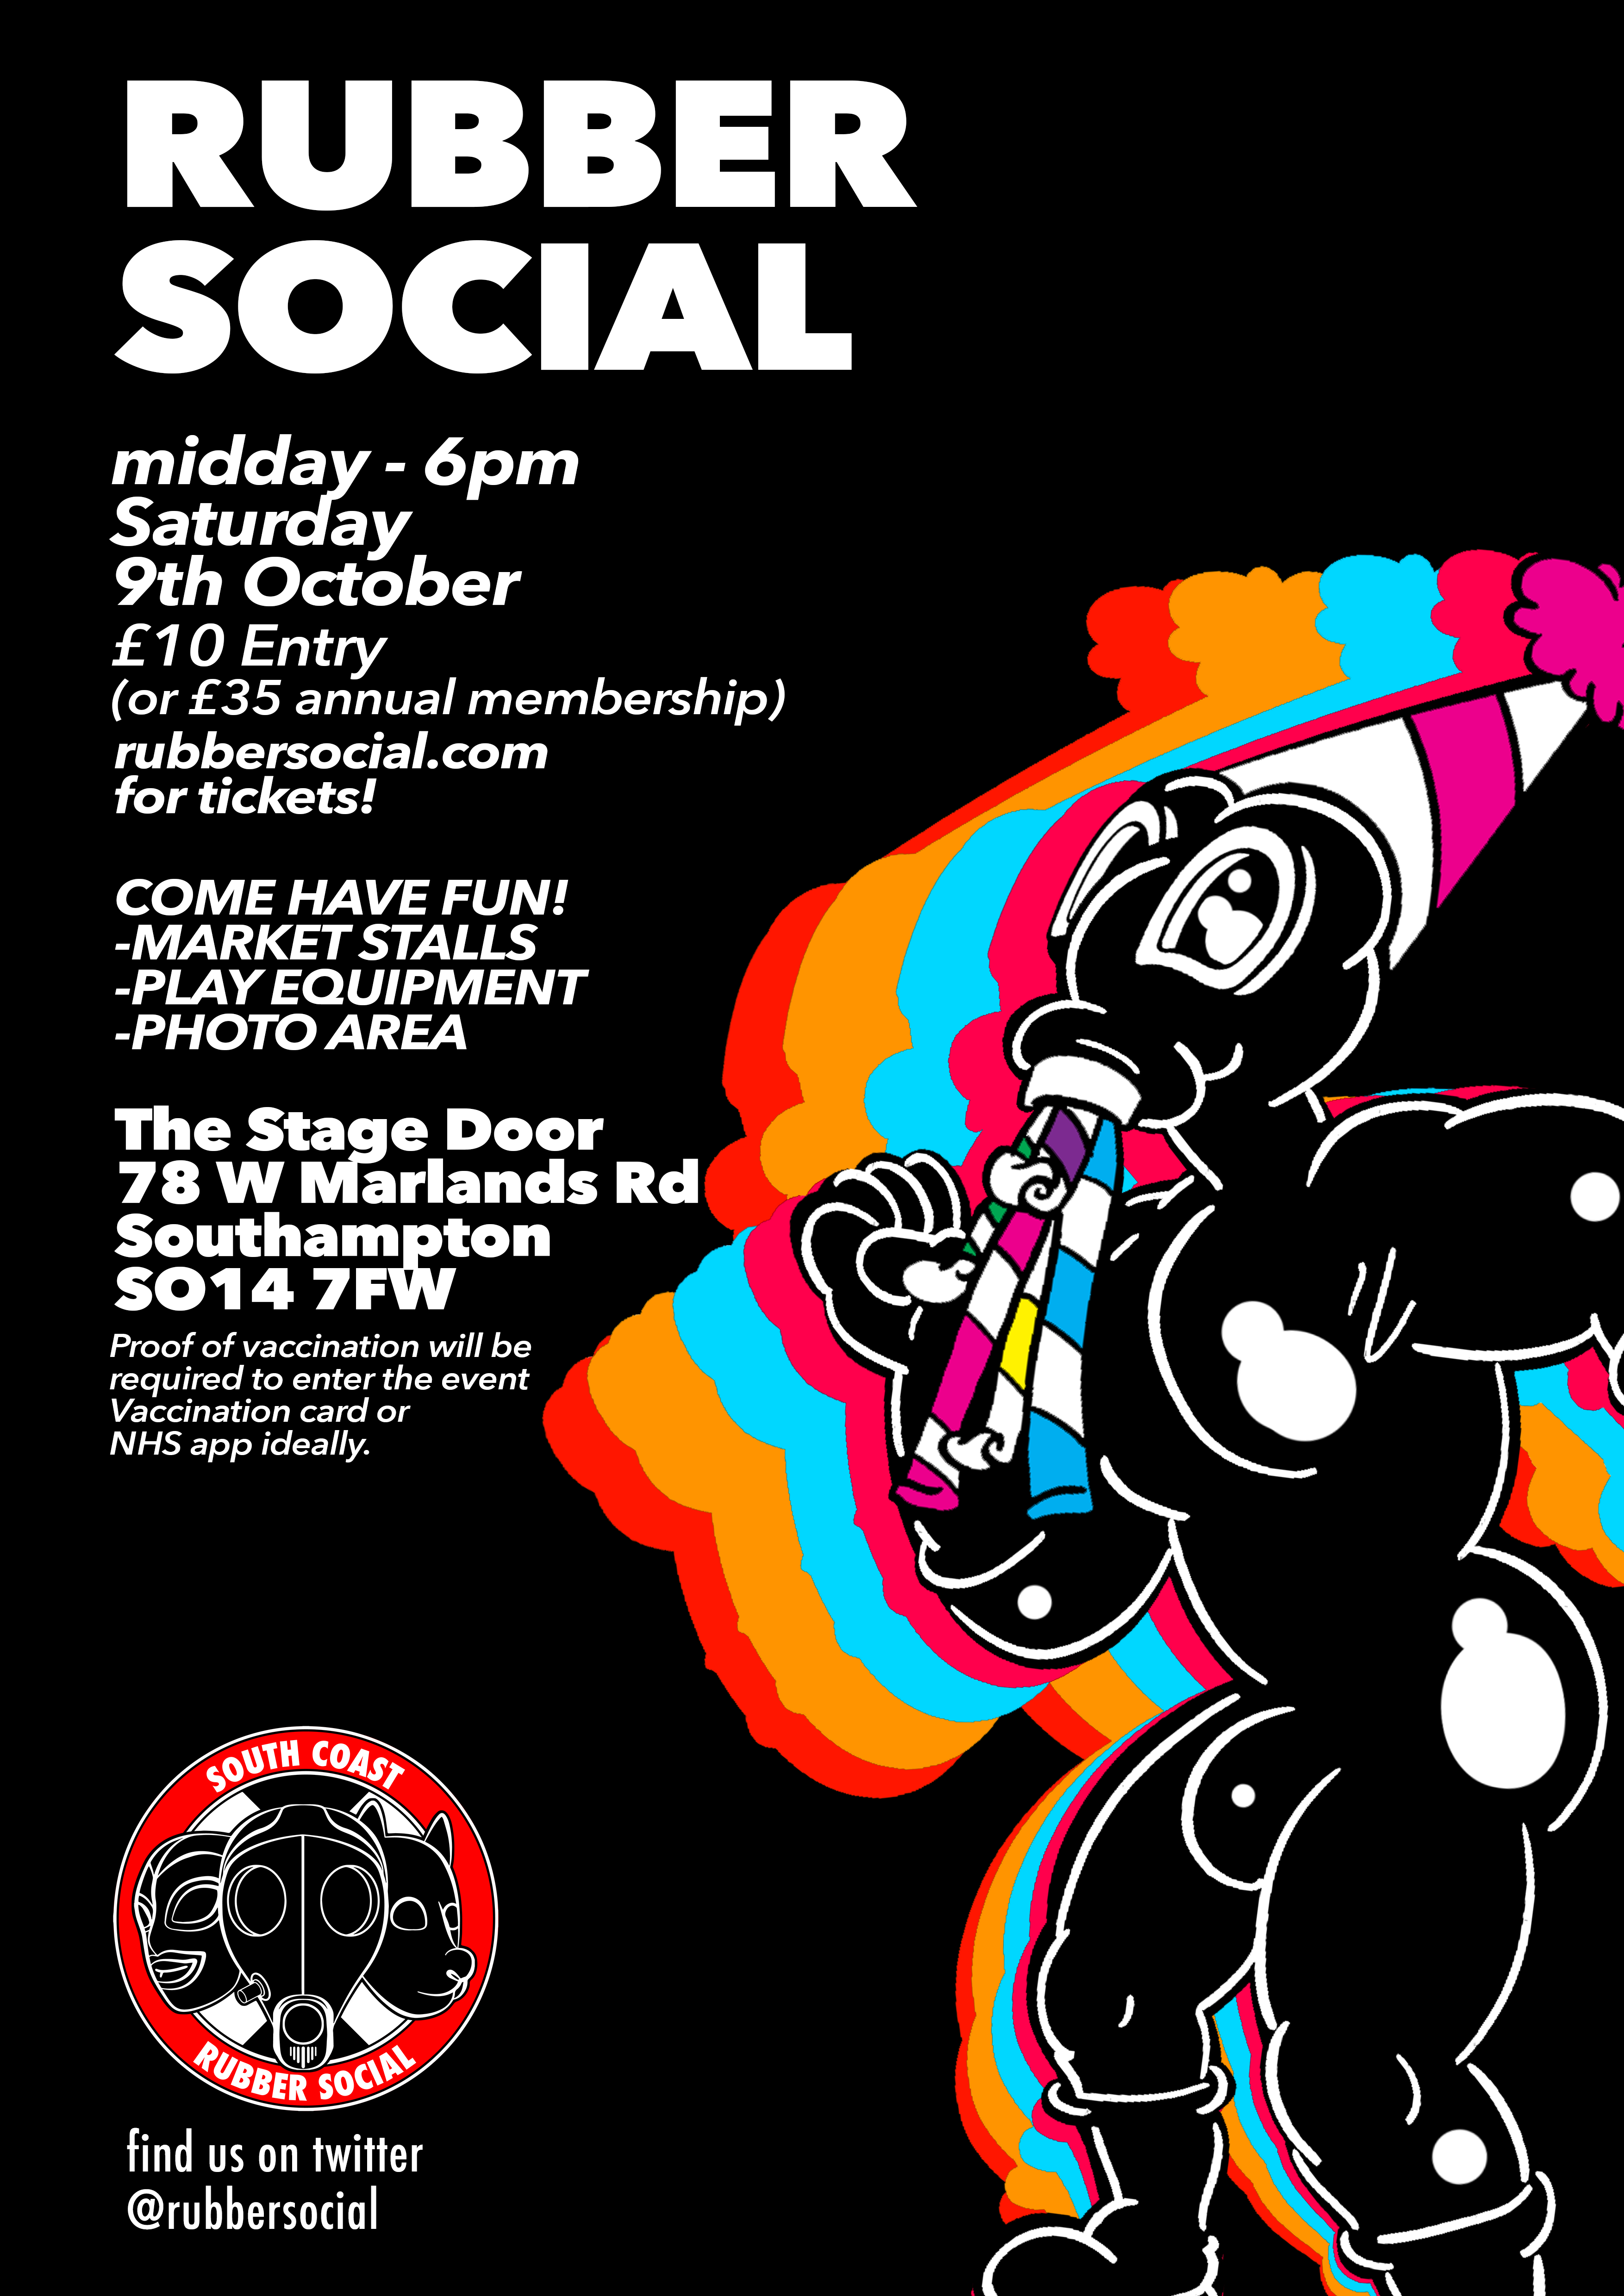 October 9th 2021 RubberSocial